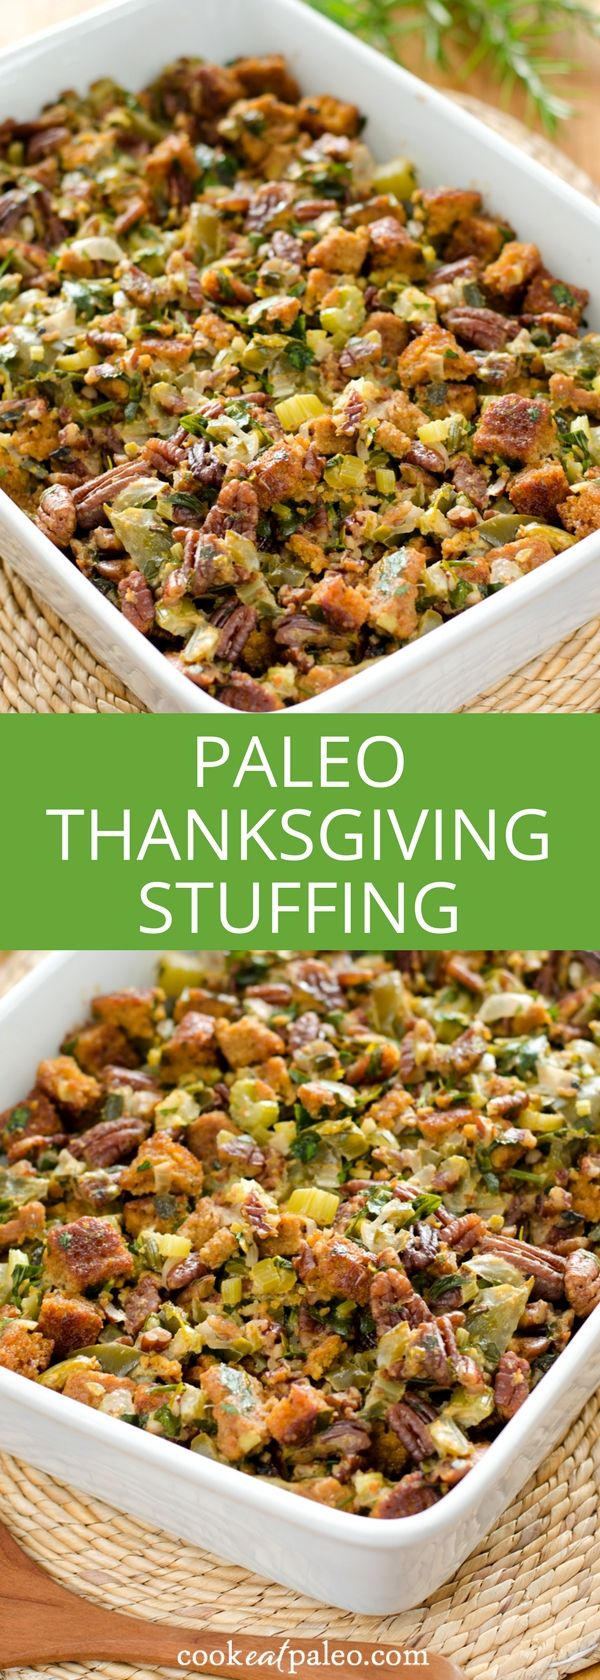 This stuffing is based on the traditional cornbread dressing I've made for years. The hint of sweetness and spice with the vegetables, herbs, and pecans is a family favorite. The perfect gluten-free stuffing that's a paleo spin on traditional cornbread dressing!  #thanksgivingrecipe #paleorecipe